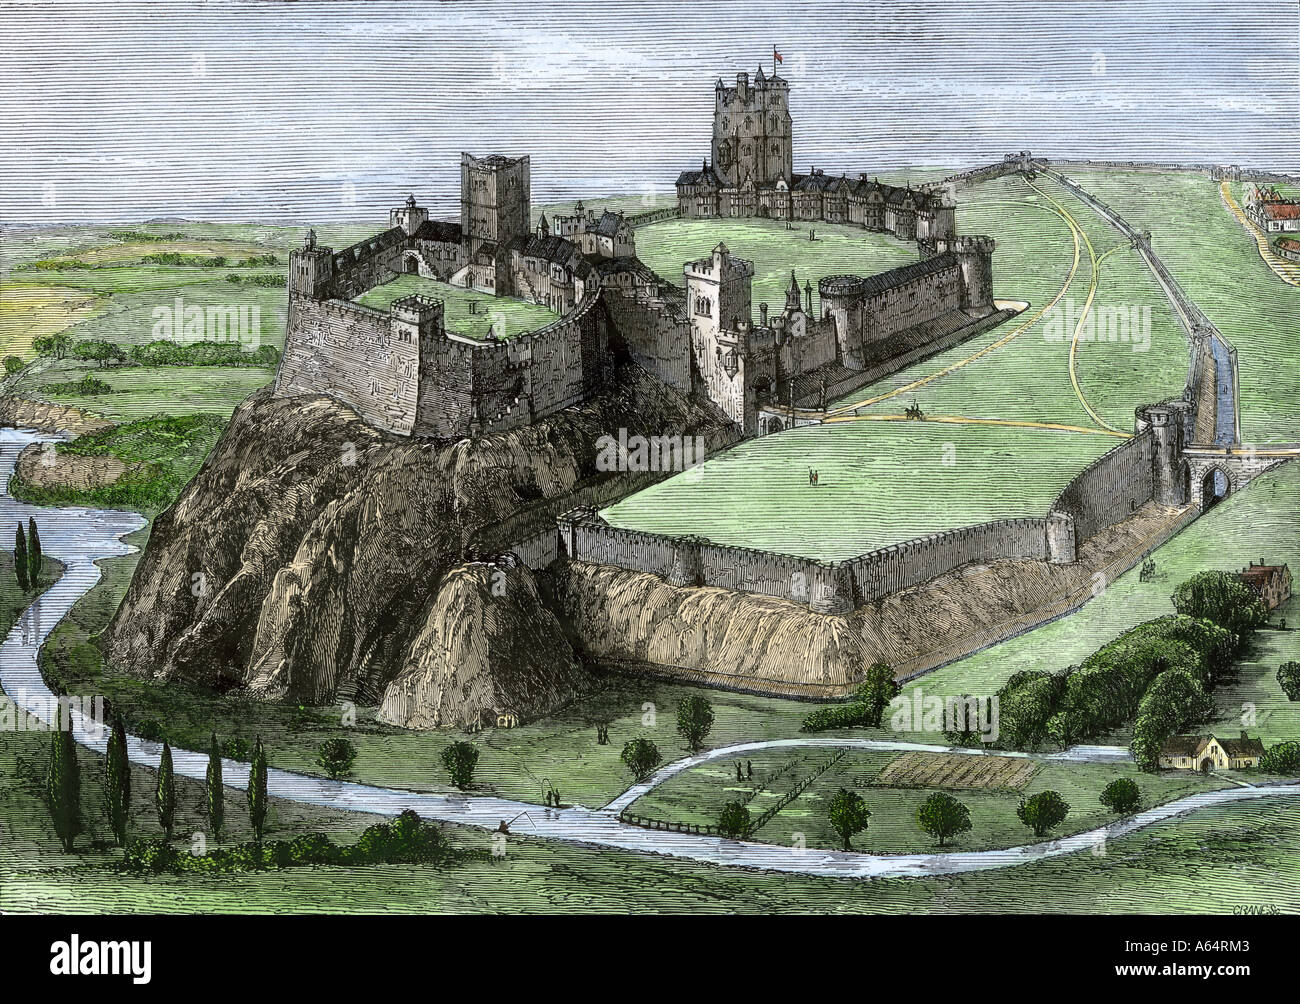 Medieval Nottingham Castle overlooking the Trent River and English countryside about 1500 (demolished in 1649). Hand-colored woodcut - Stock Image